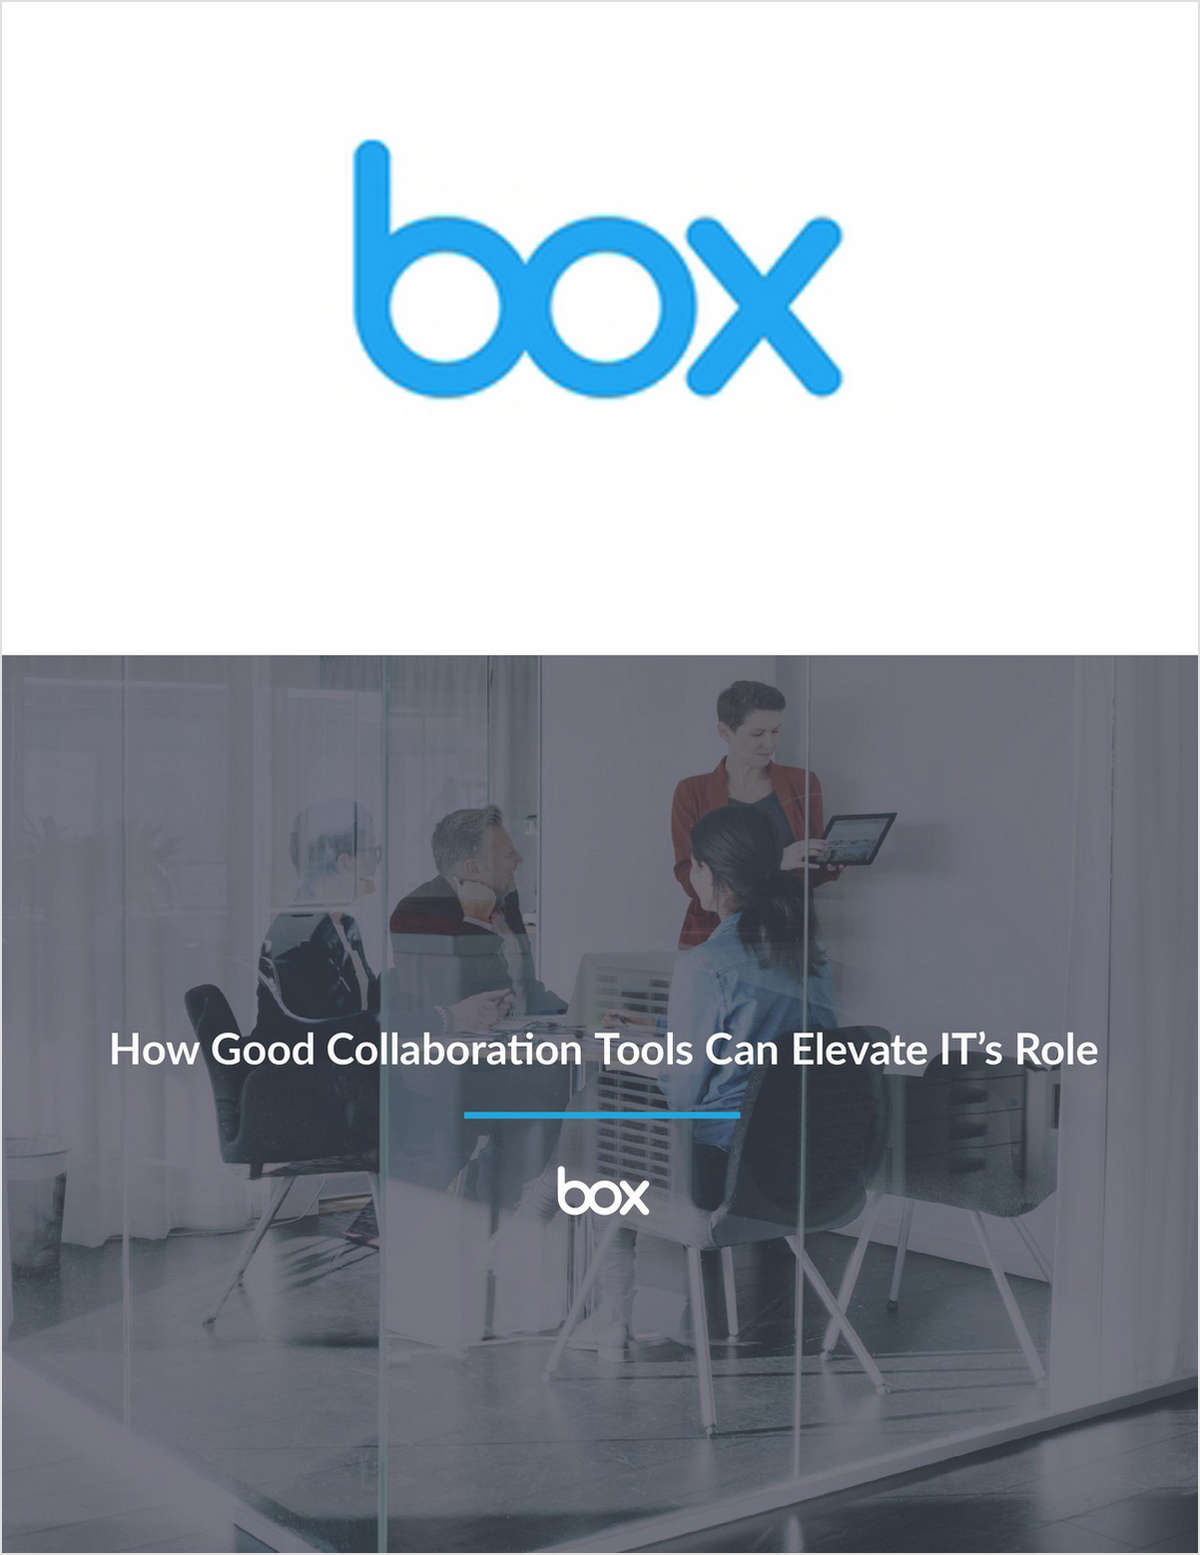 How Good Collaboration Tools Can Elevate IT's Role